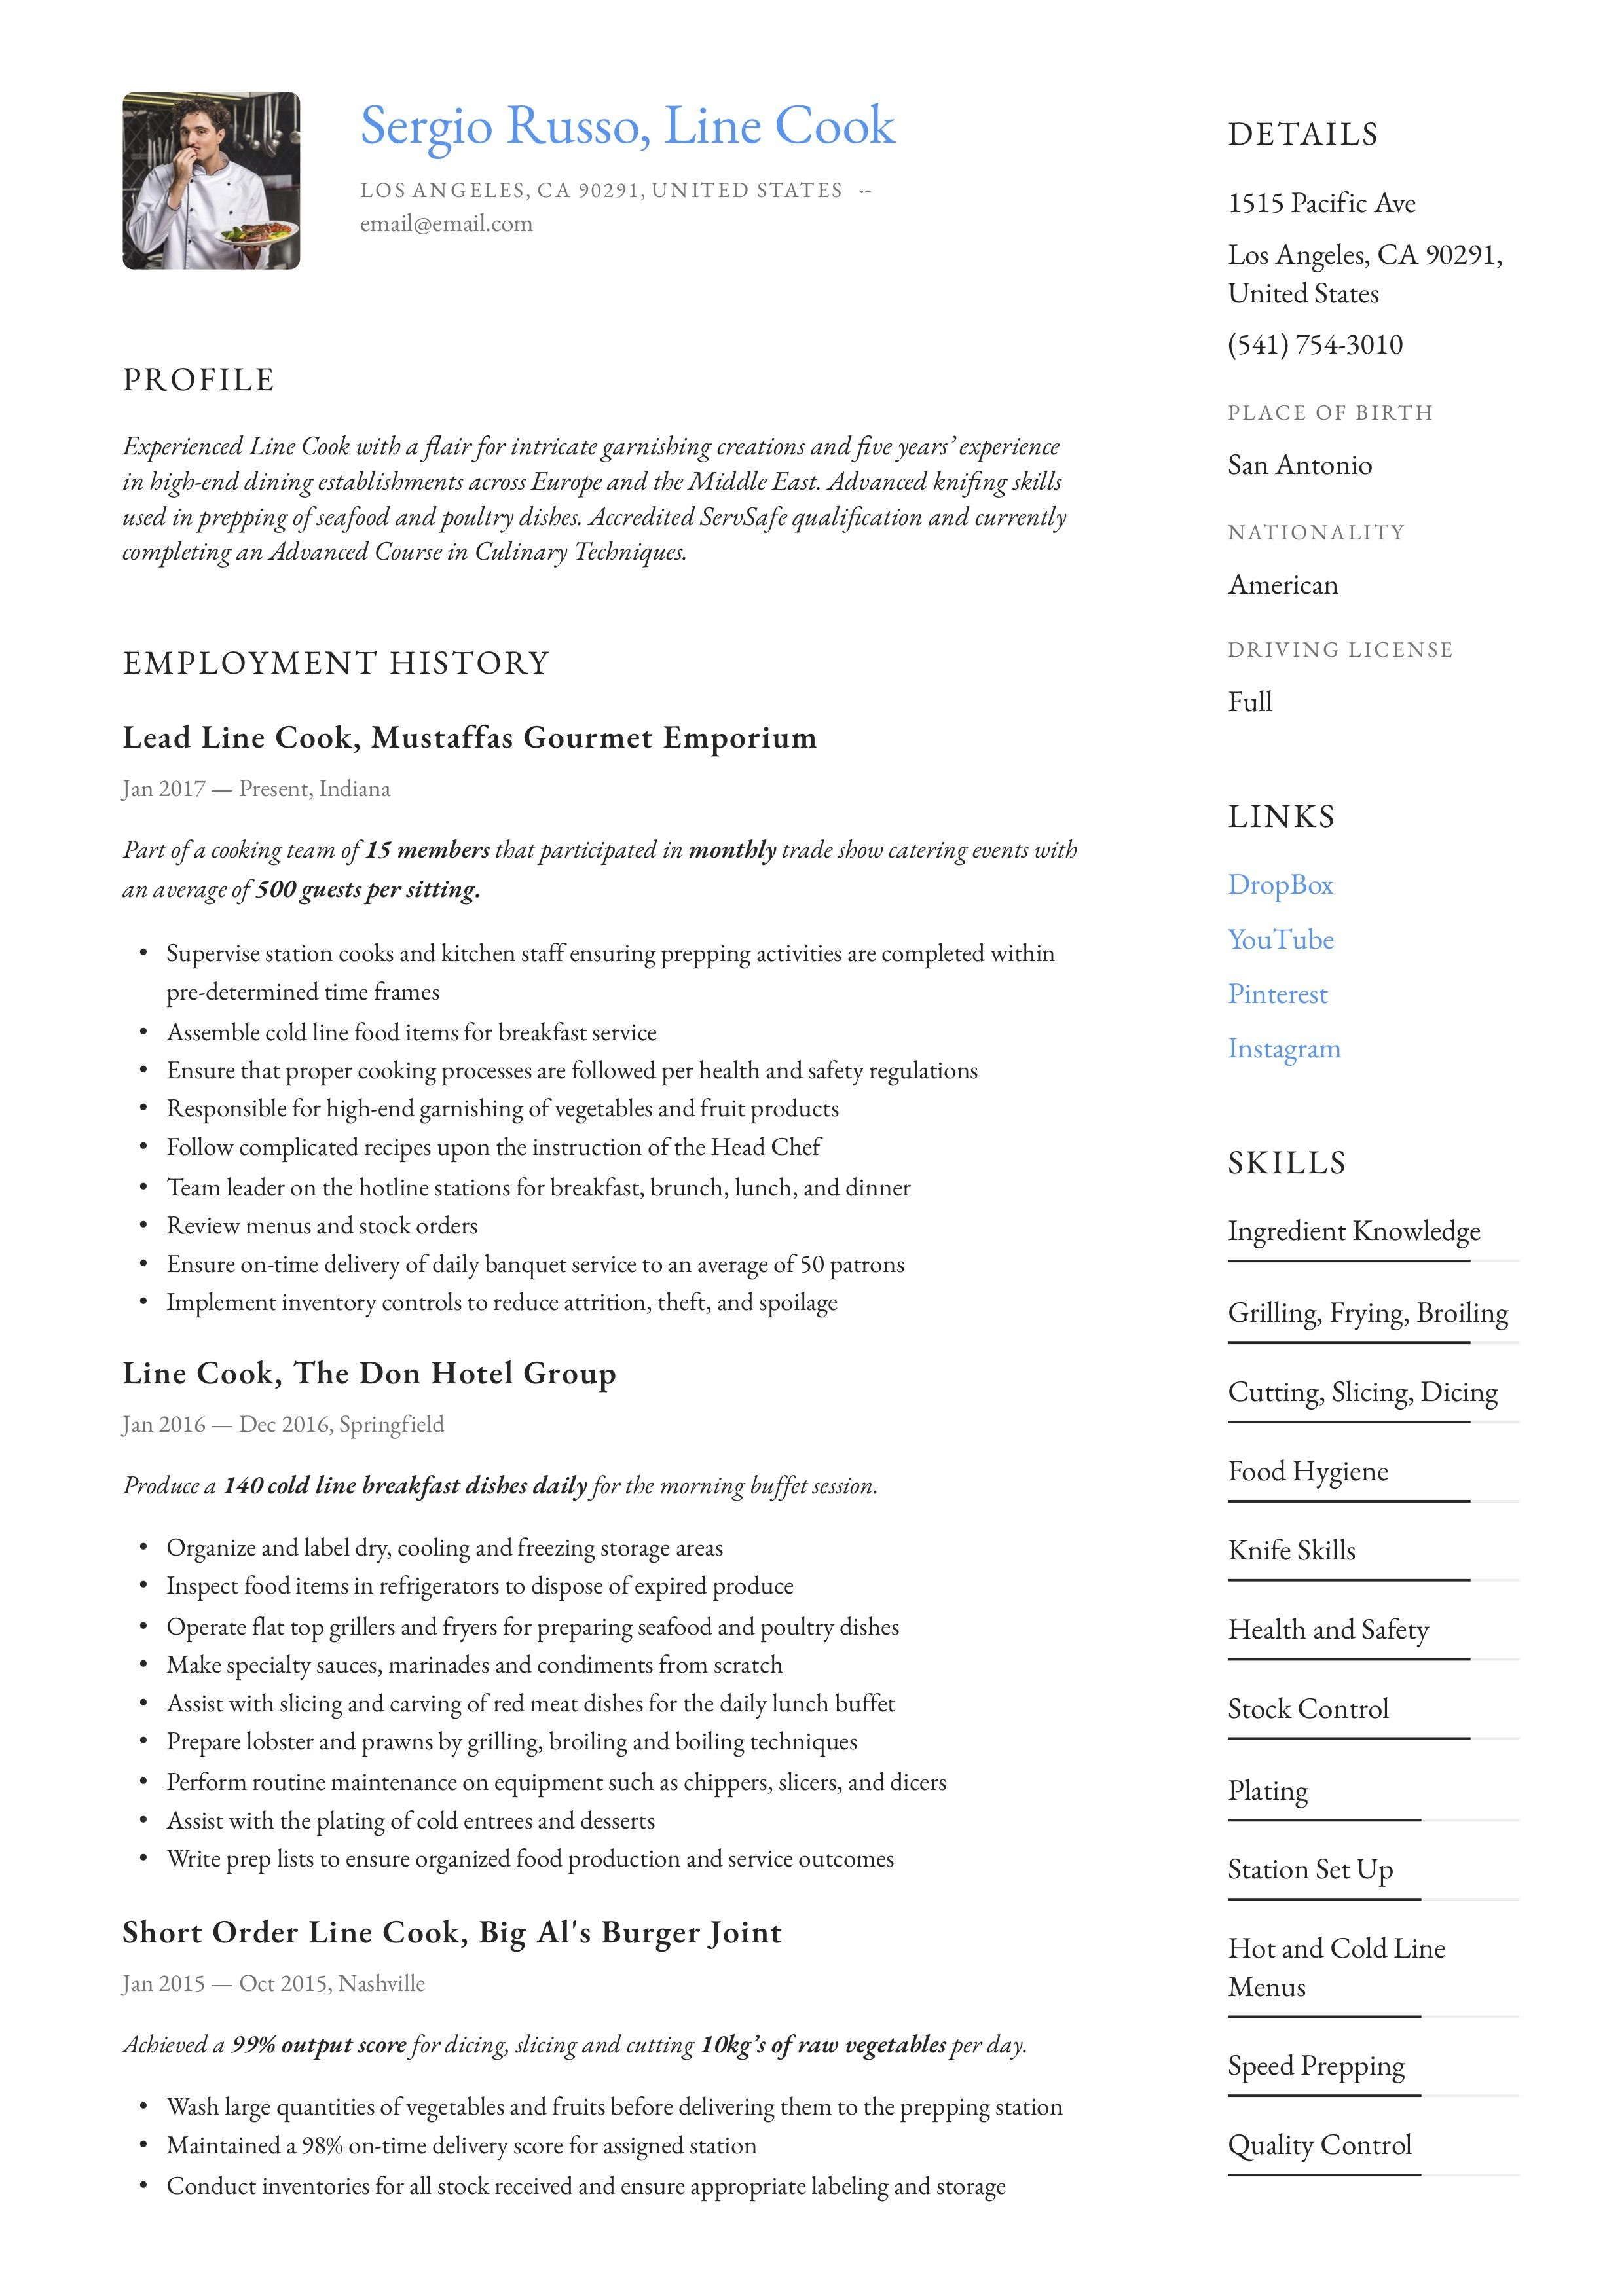 Line Cook Resume & Writing Guide in 2020 Guided writing